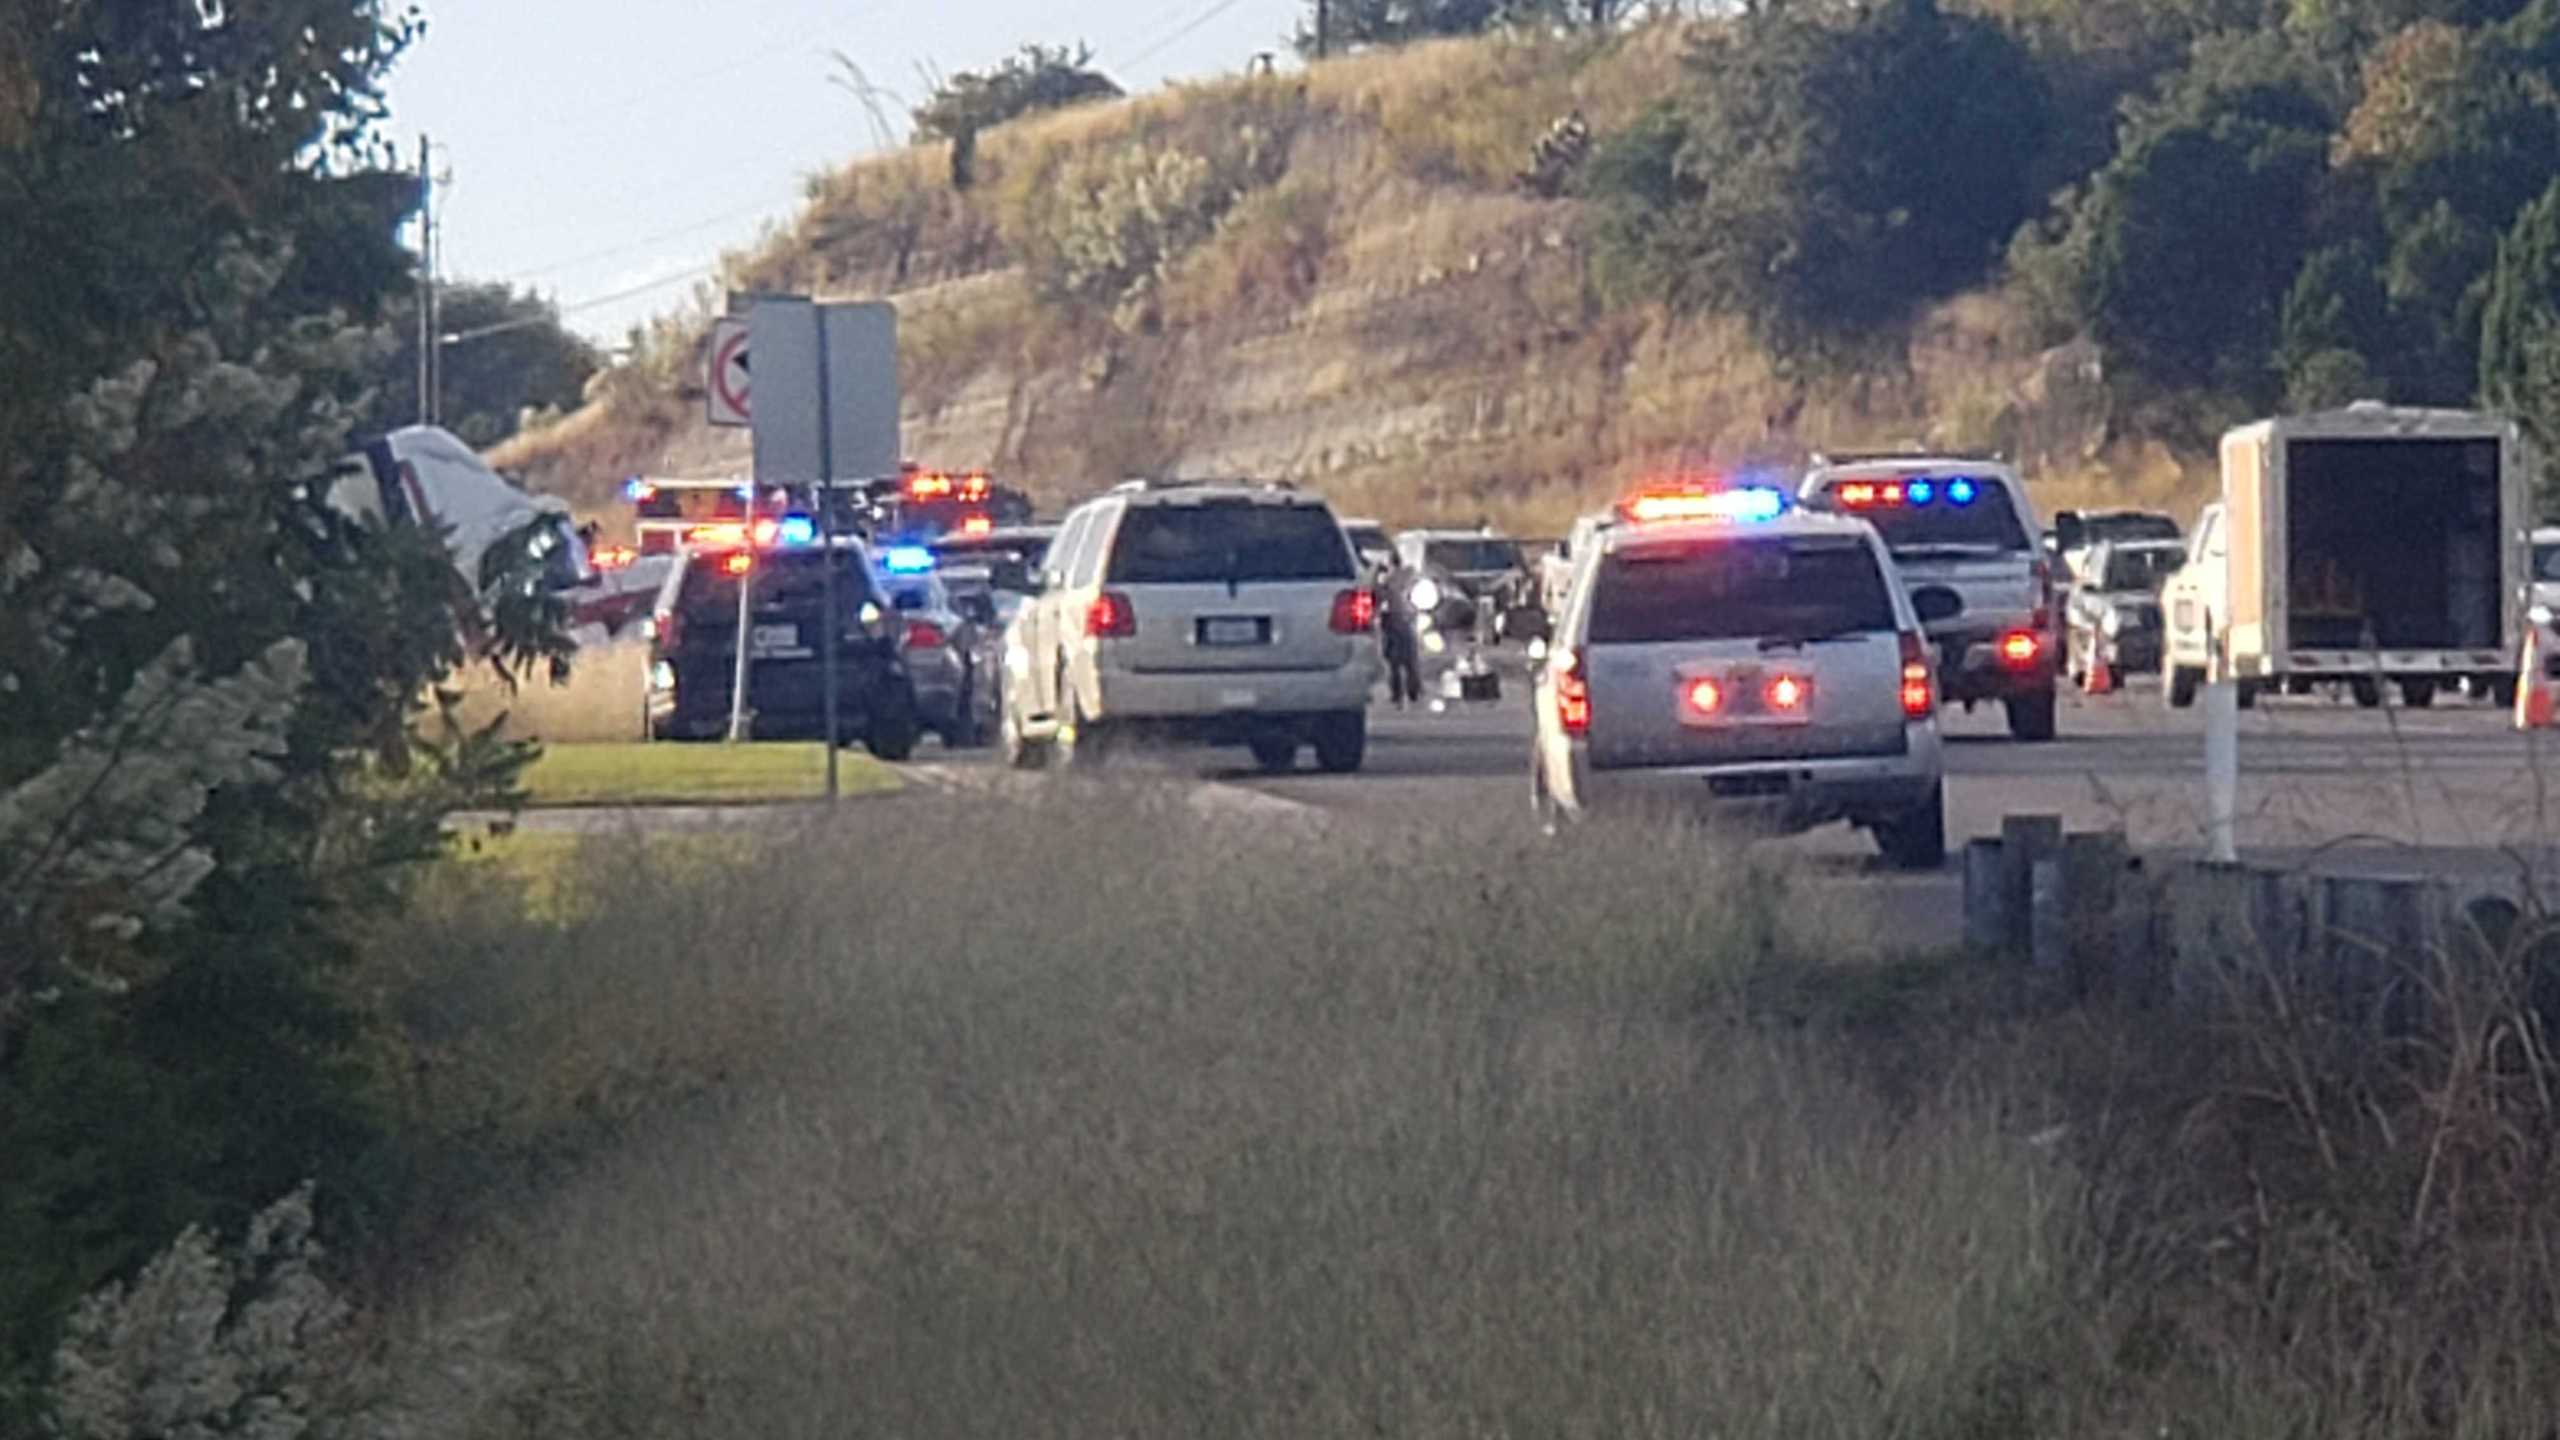 Someone was killed in a multiple-vehicle crash Oct. 21 on FM 620 Road, EMS says (KXAN/Andrew Choat)